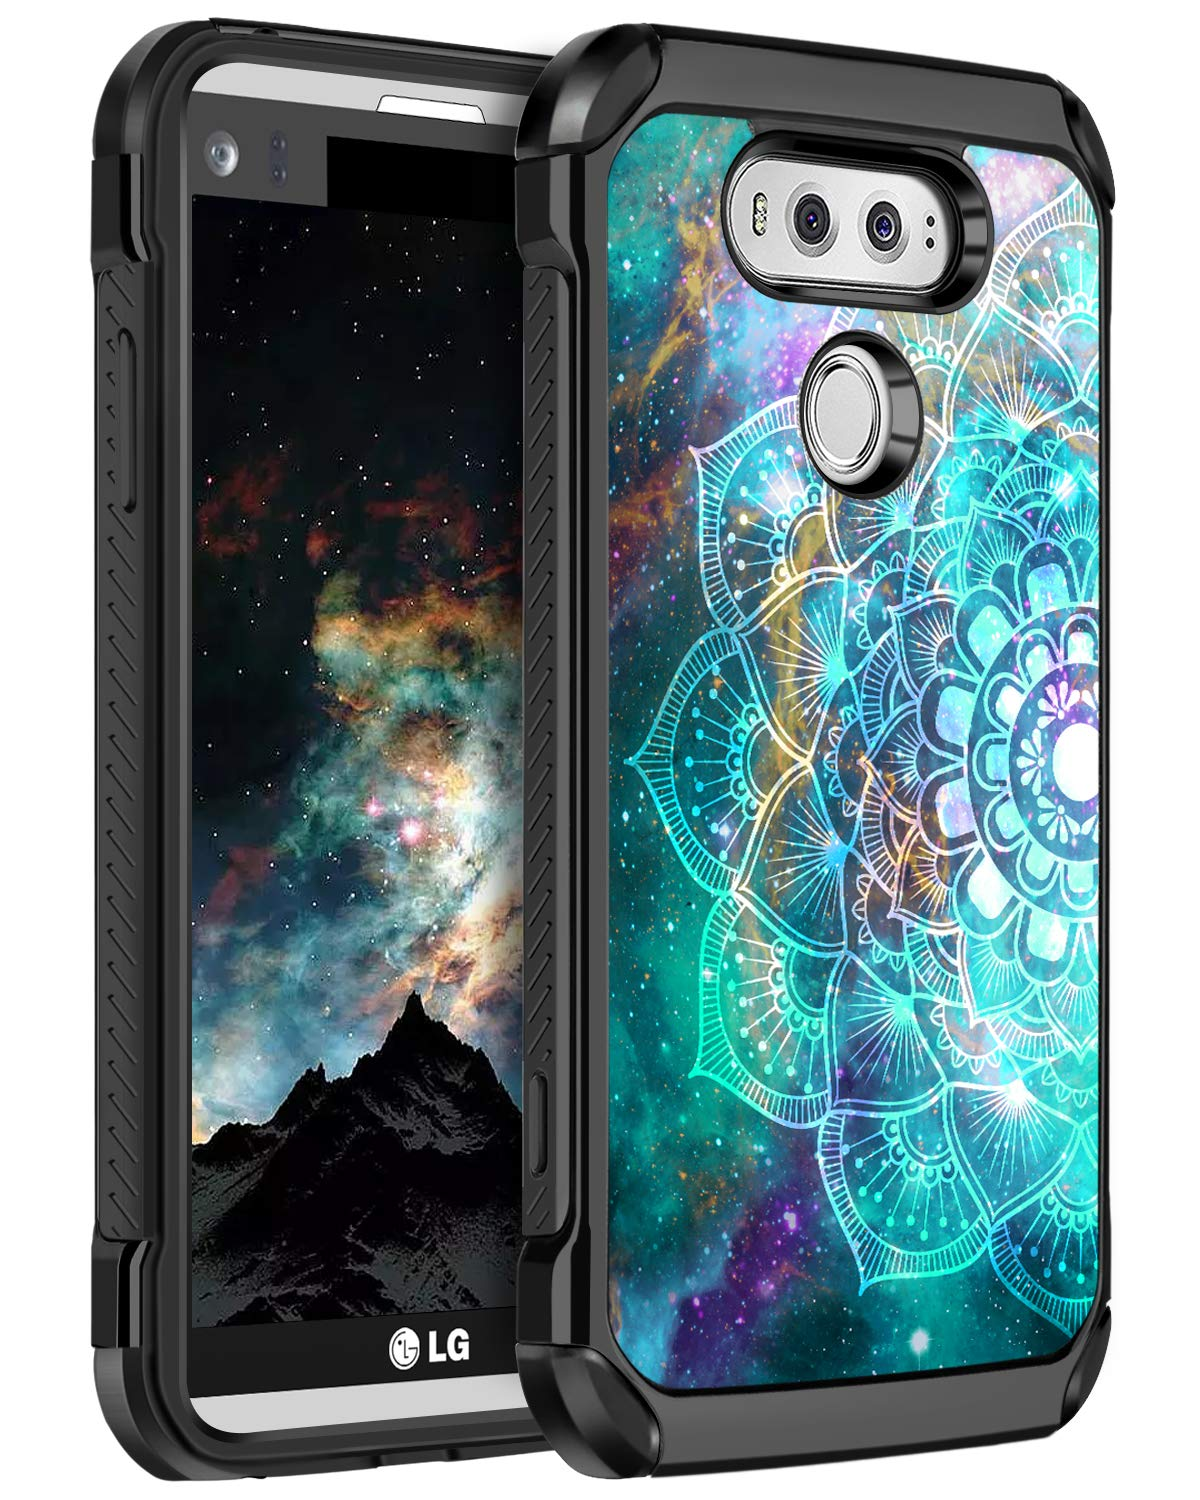 BENTOBEN LG V20 Case, Shockproof 2 in 1 Hybrid Hard PC Soft TPU Bumper Glow in The Dark Noctilucent Slim Dual Layer Anti-Slip Scratches Resistant Protective Phone Cover for LG V20, Mandala in Galaxy